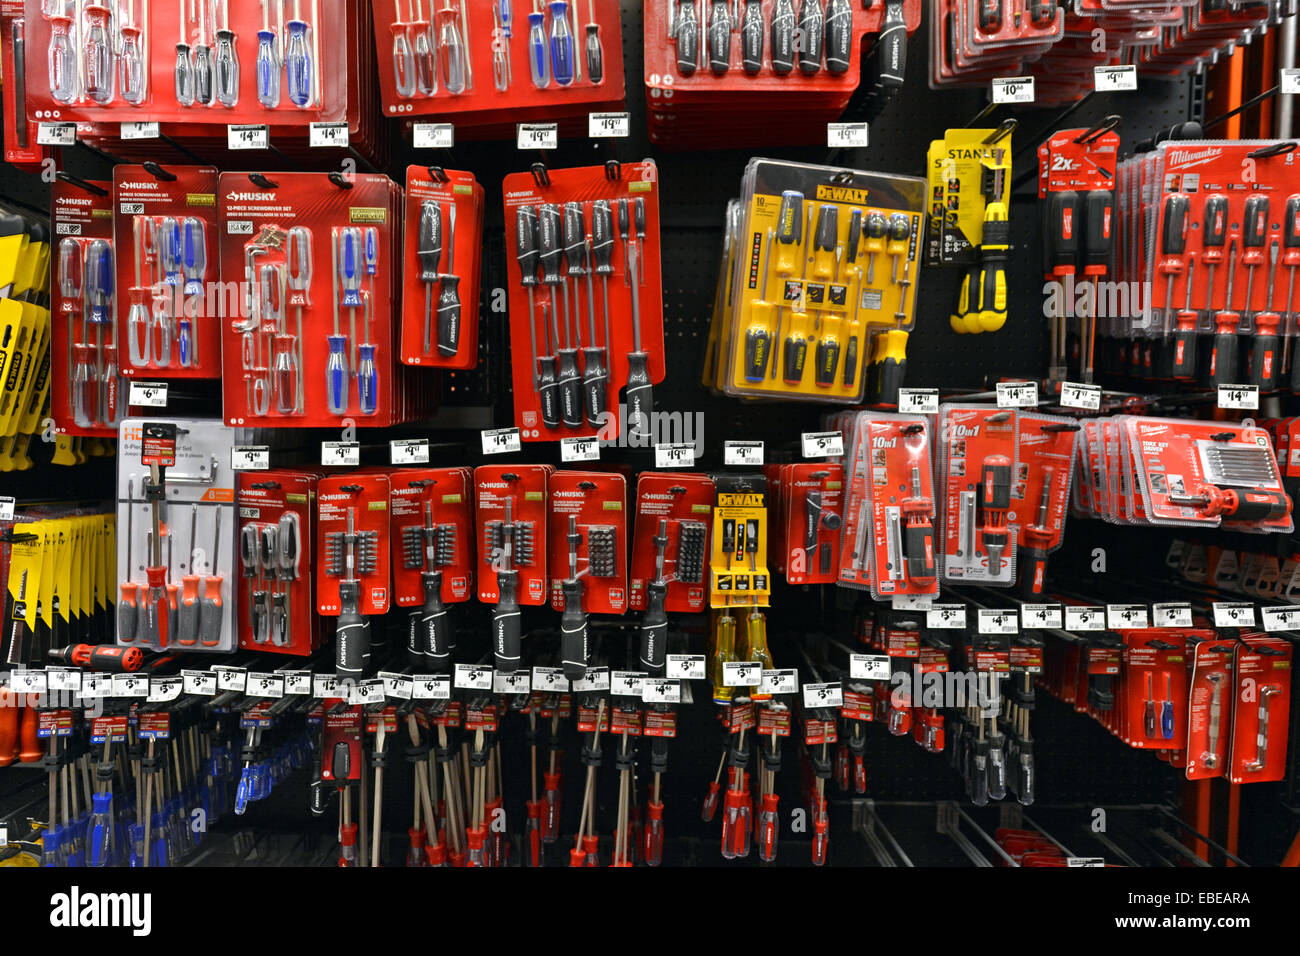 A display of small hand tools for sale at a Home Depot store in ...